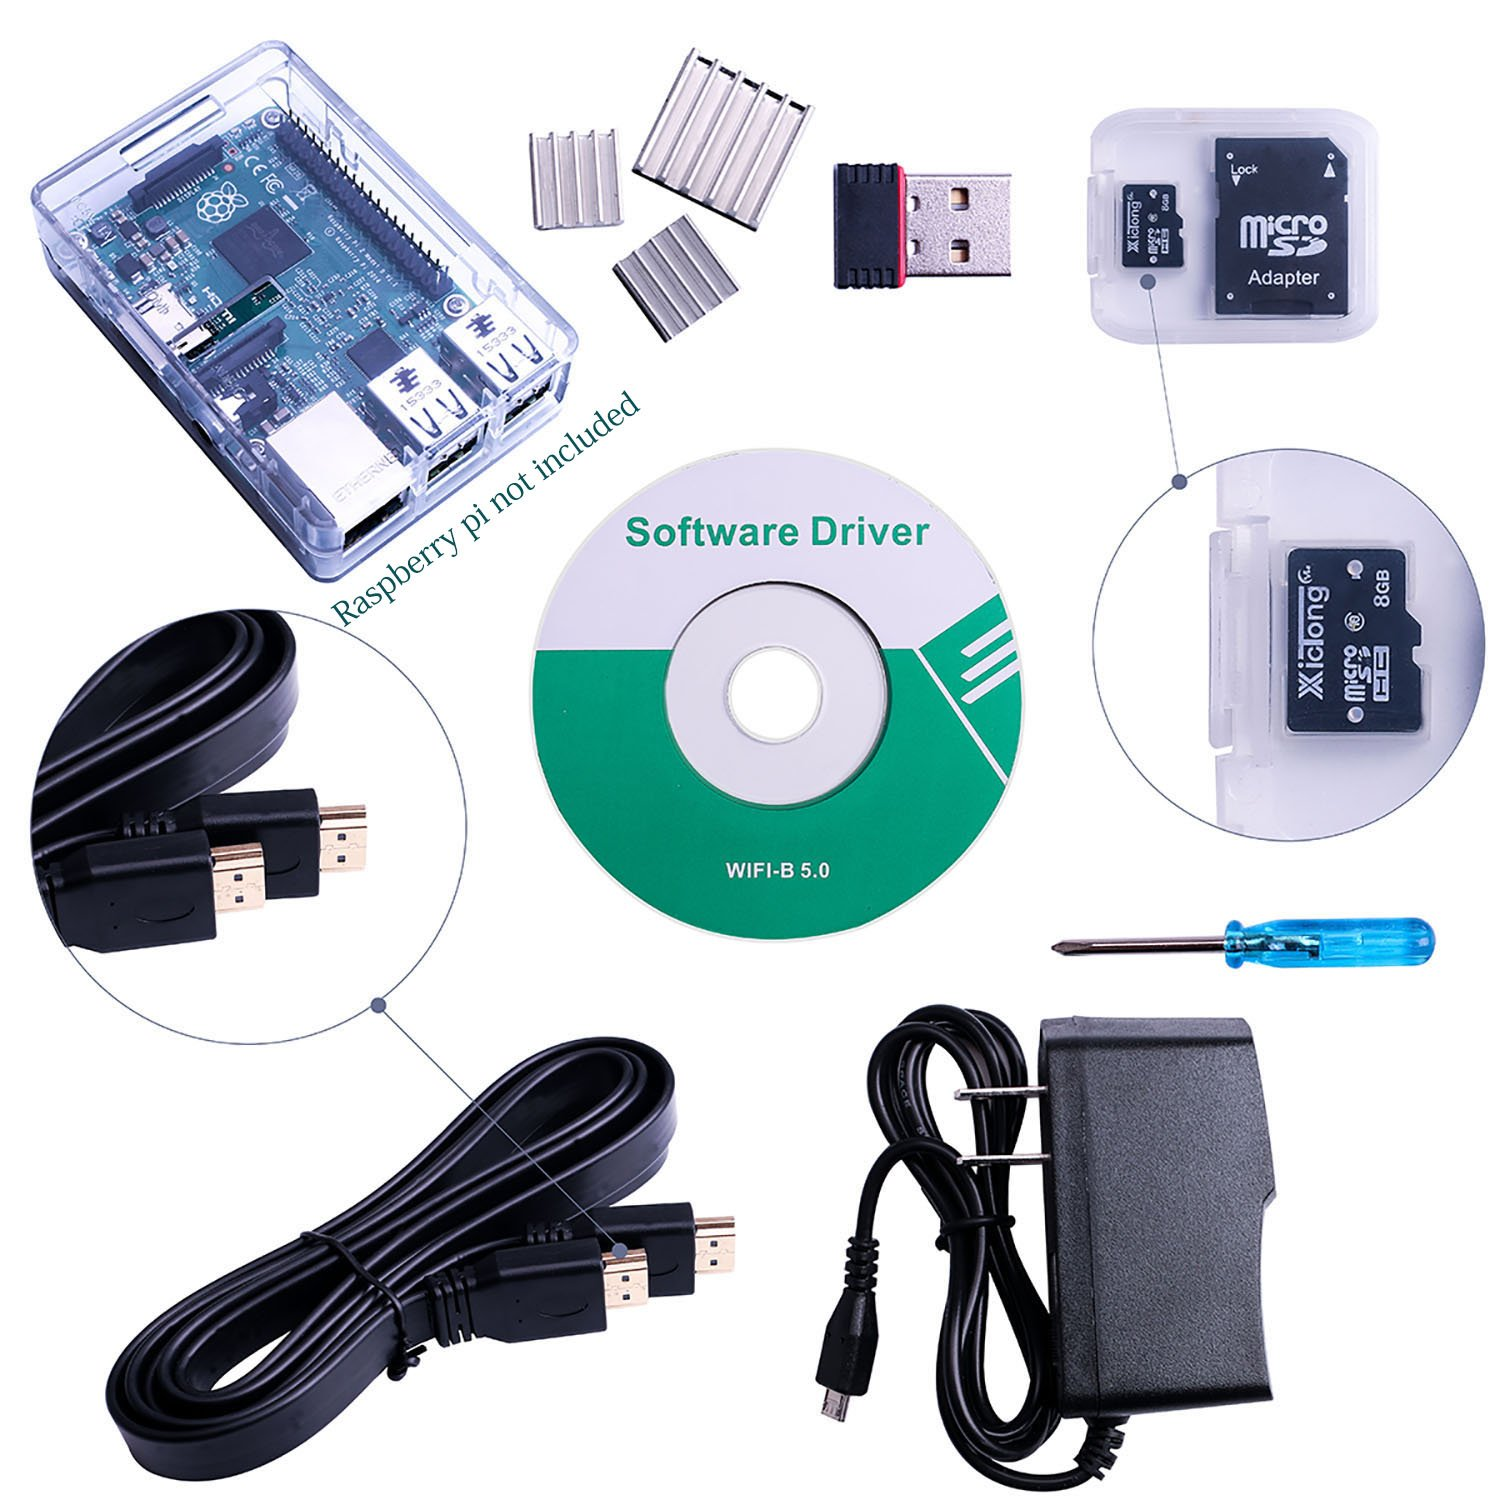 ELEGOO Raspberry Pi 3 Model B Basic Starter Kit with NOOBs Pre-Loaded 8GB SD Card - Wifi Dongle - Case - Power Supply - HDMI Cable - Heat Sink - Raspberry Pi Not Included